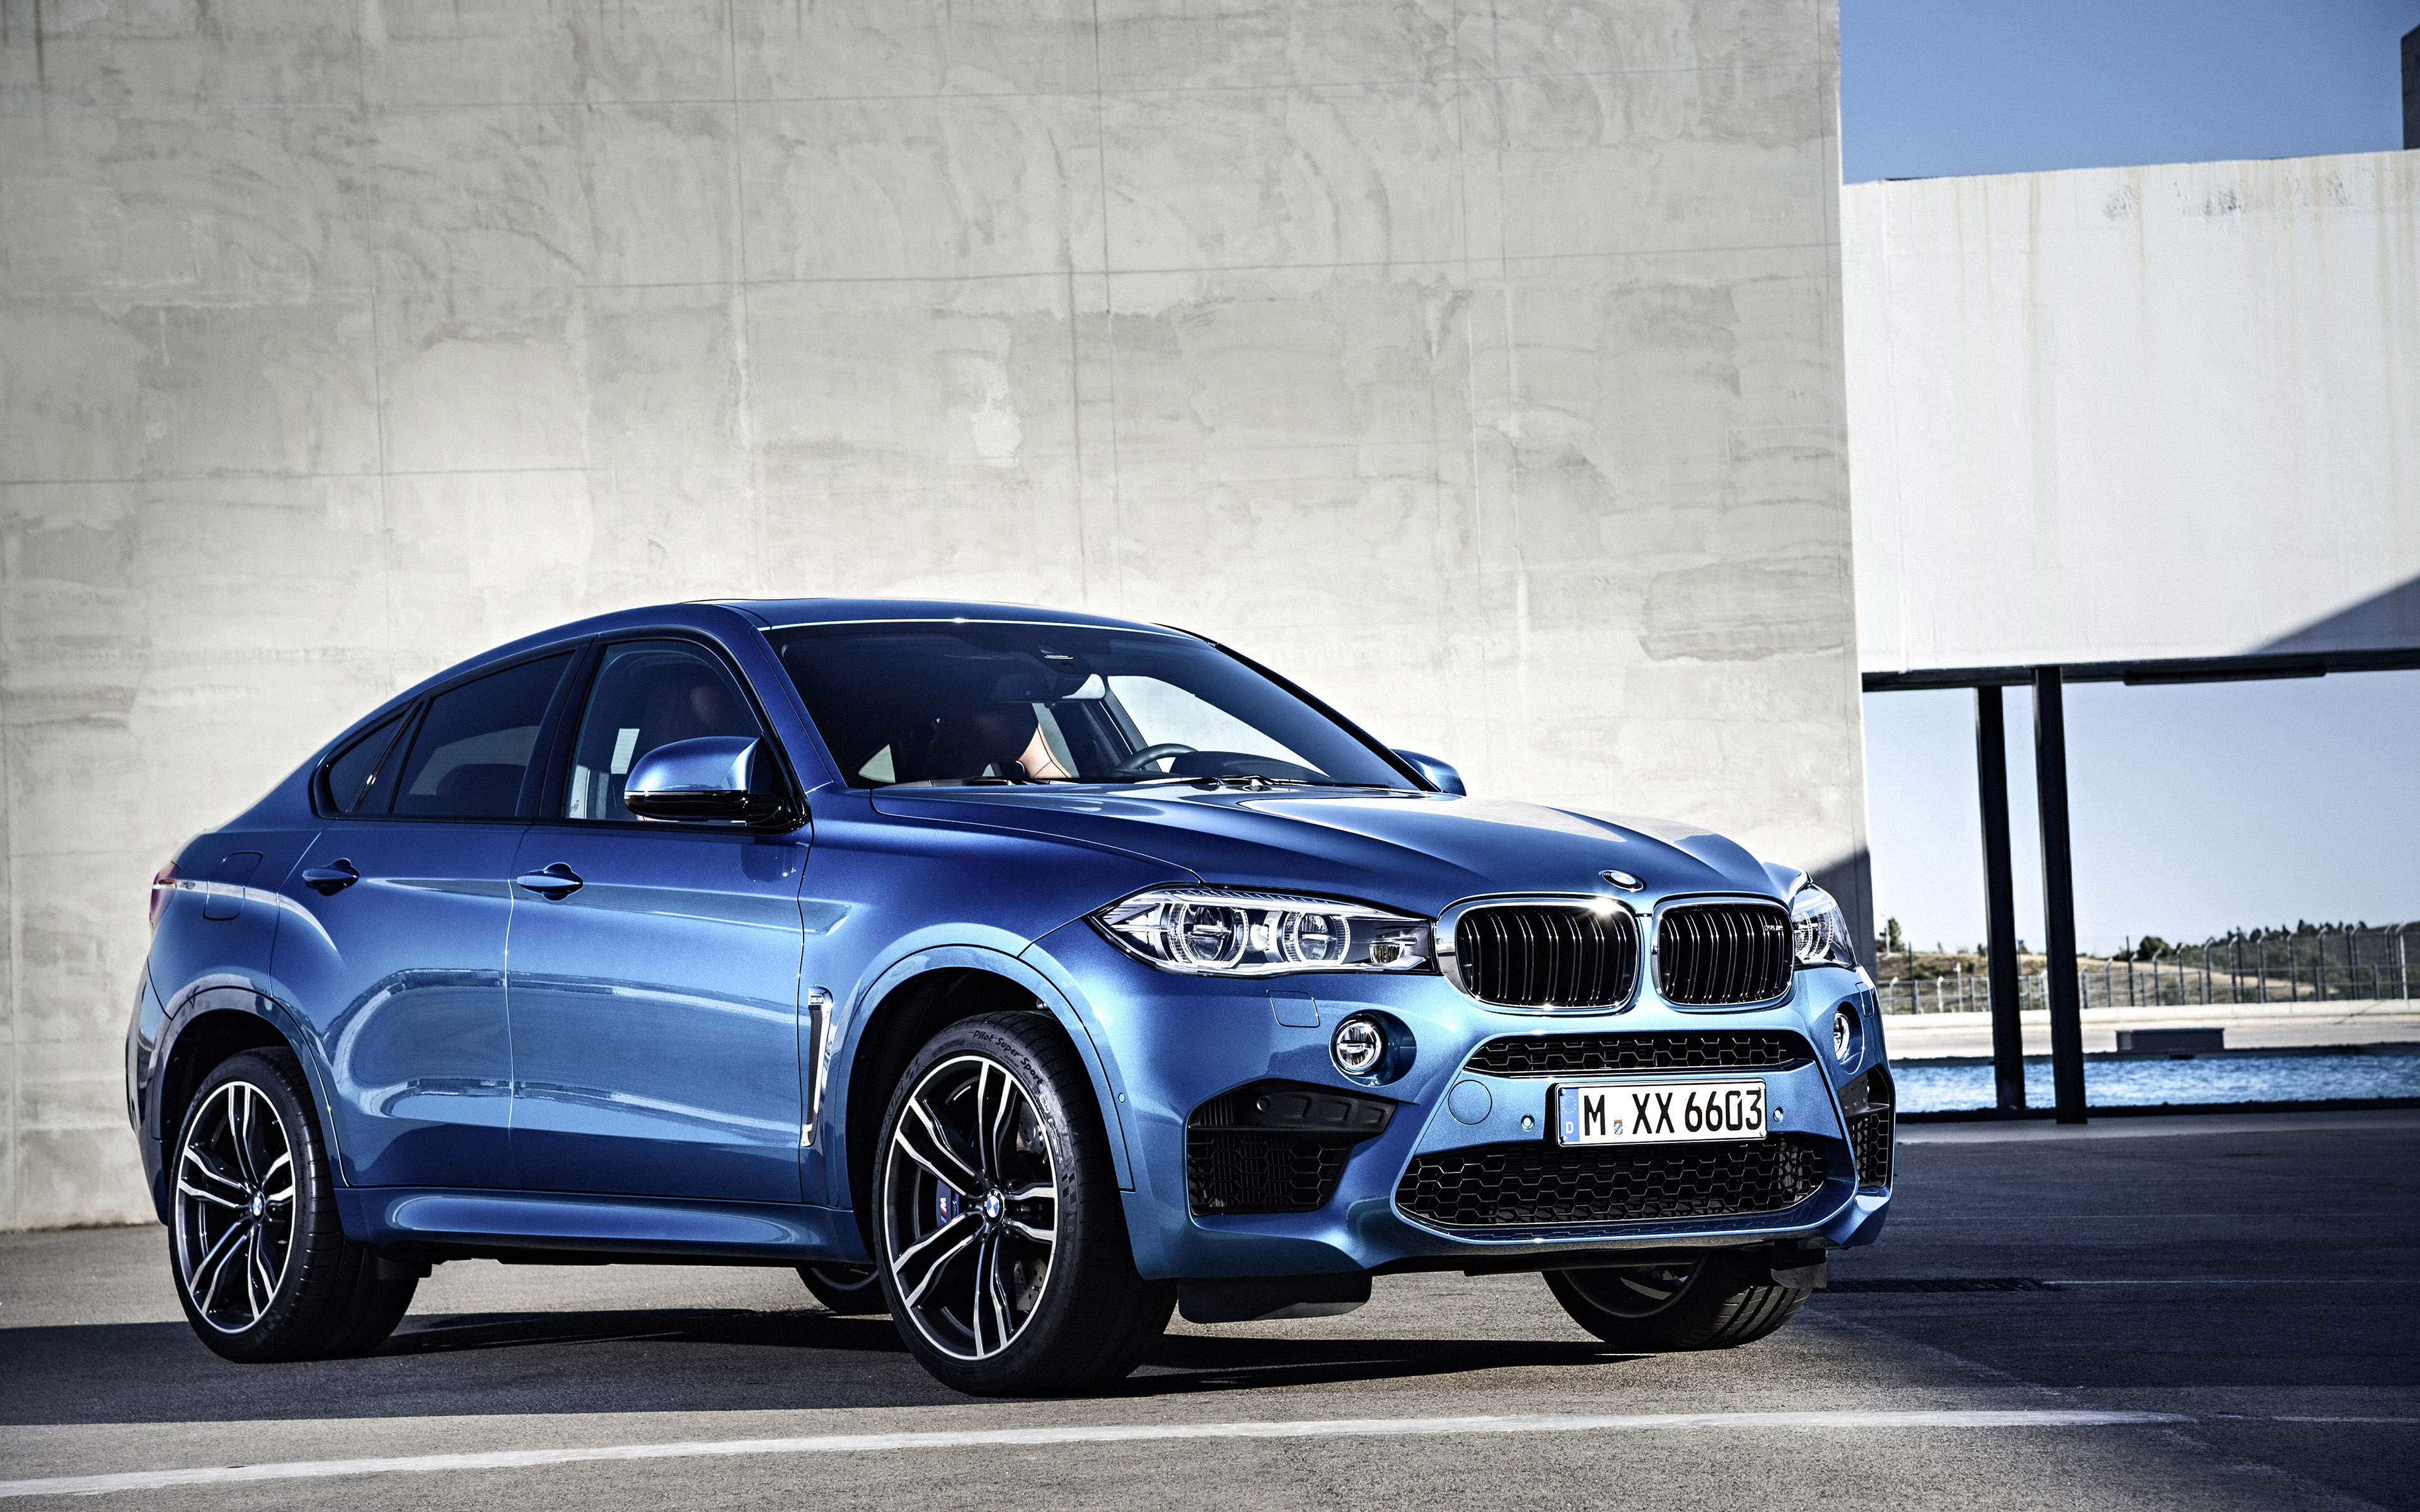 2015 Bmw X6 Wallpapers High Quality | Download Free